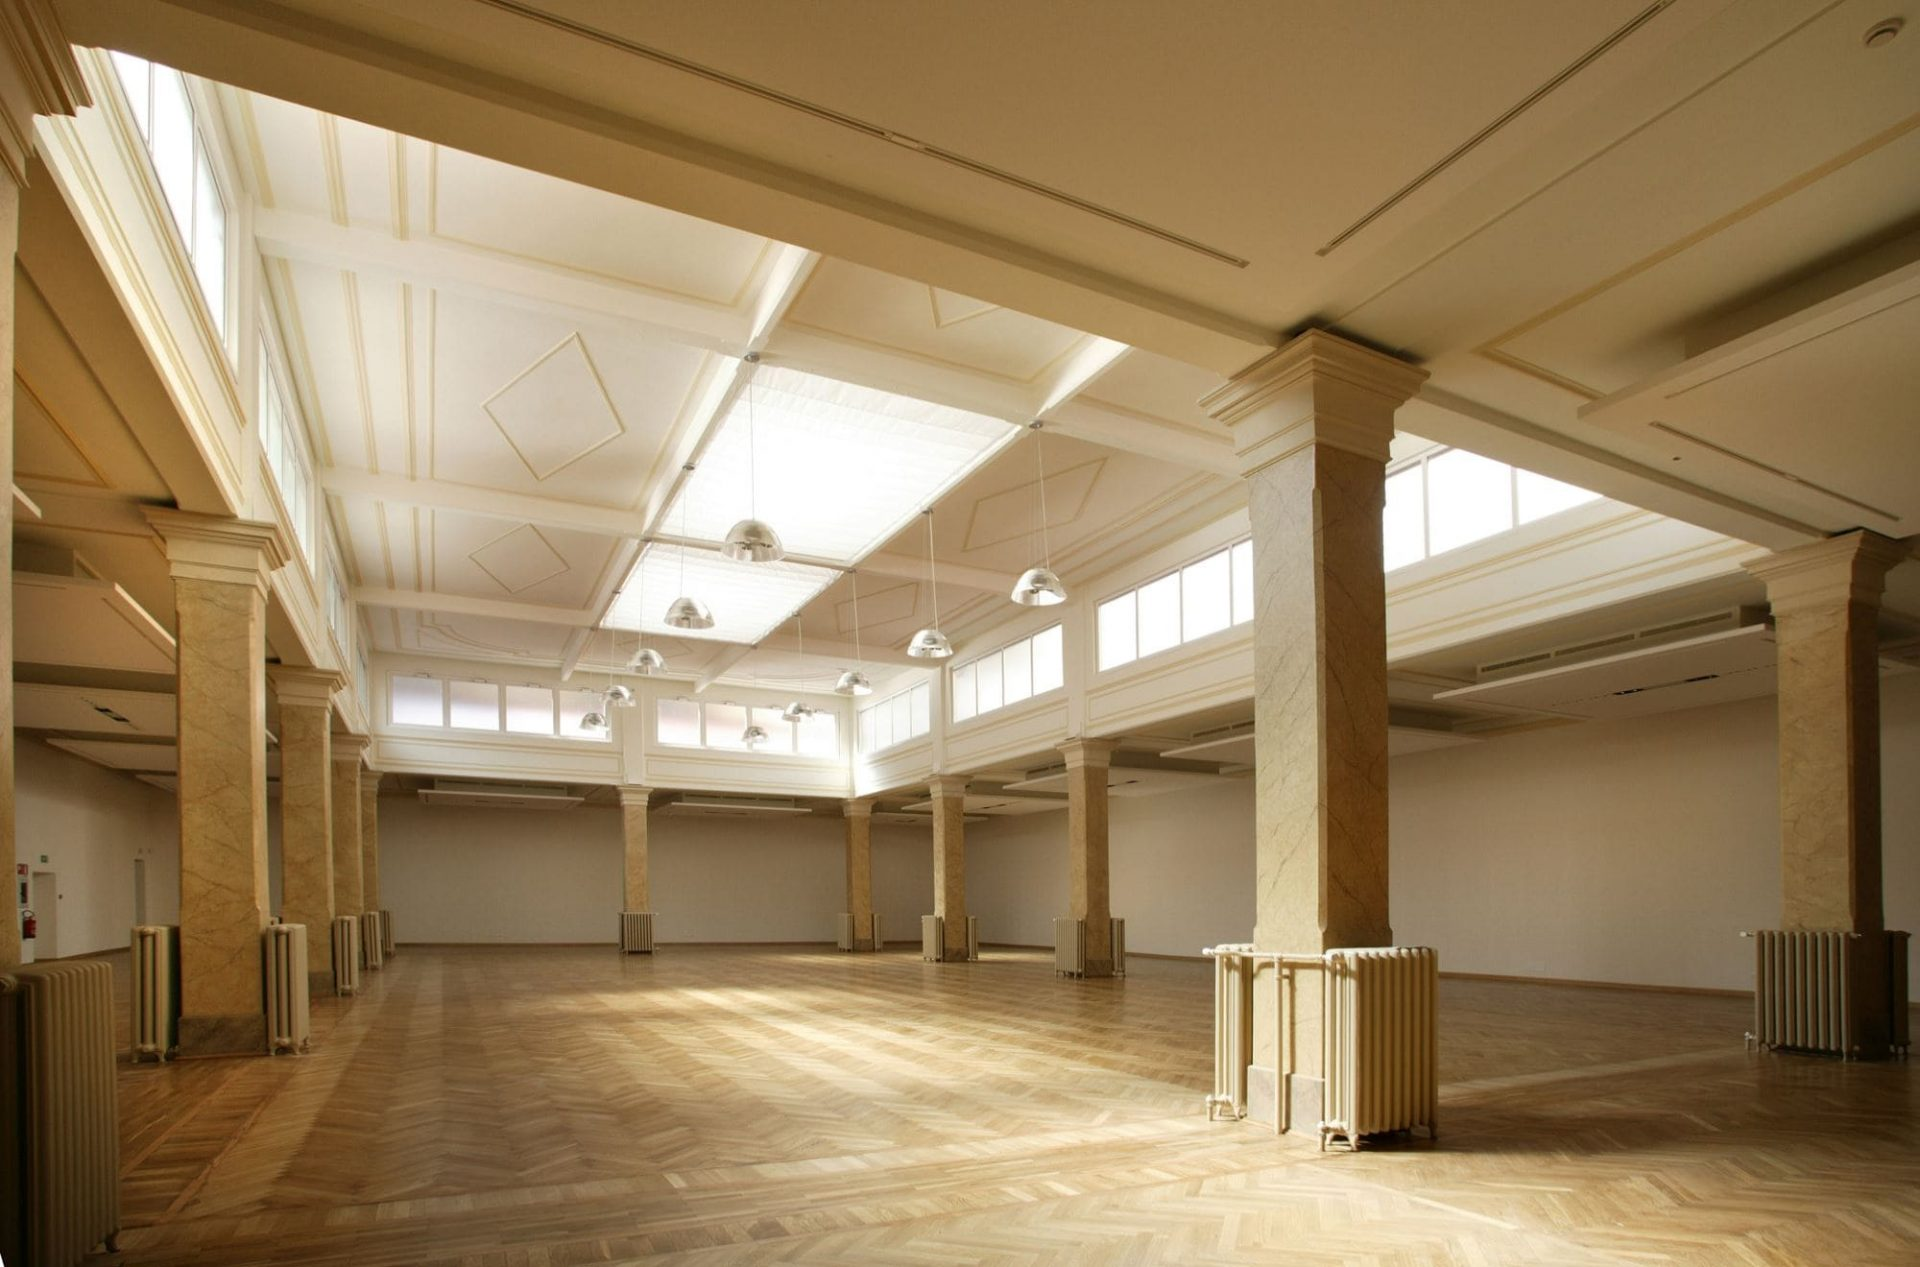 interior image of an empty building